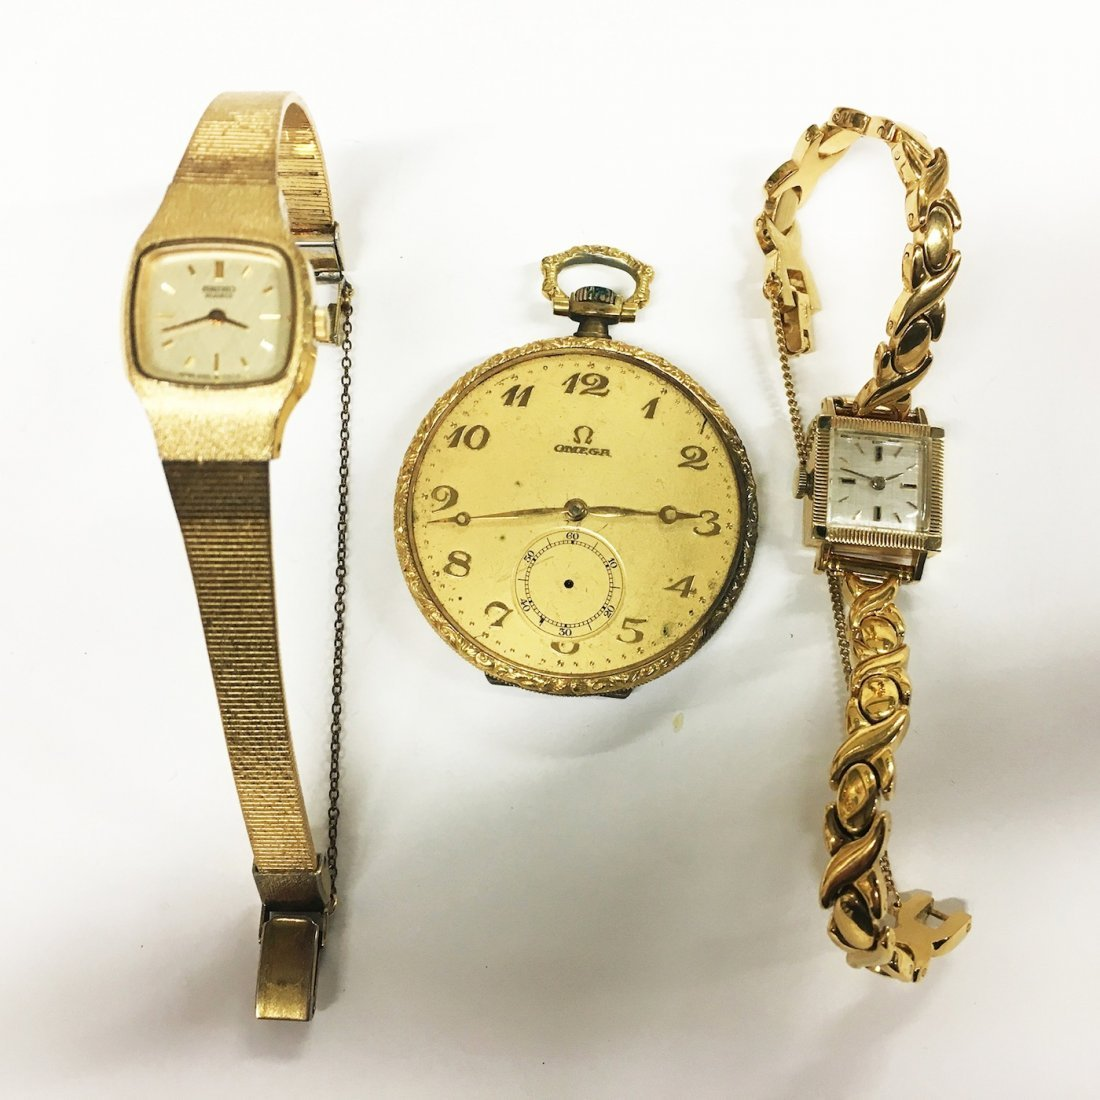 Omega Pocket watch and two wristwatches